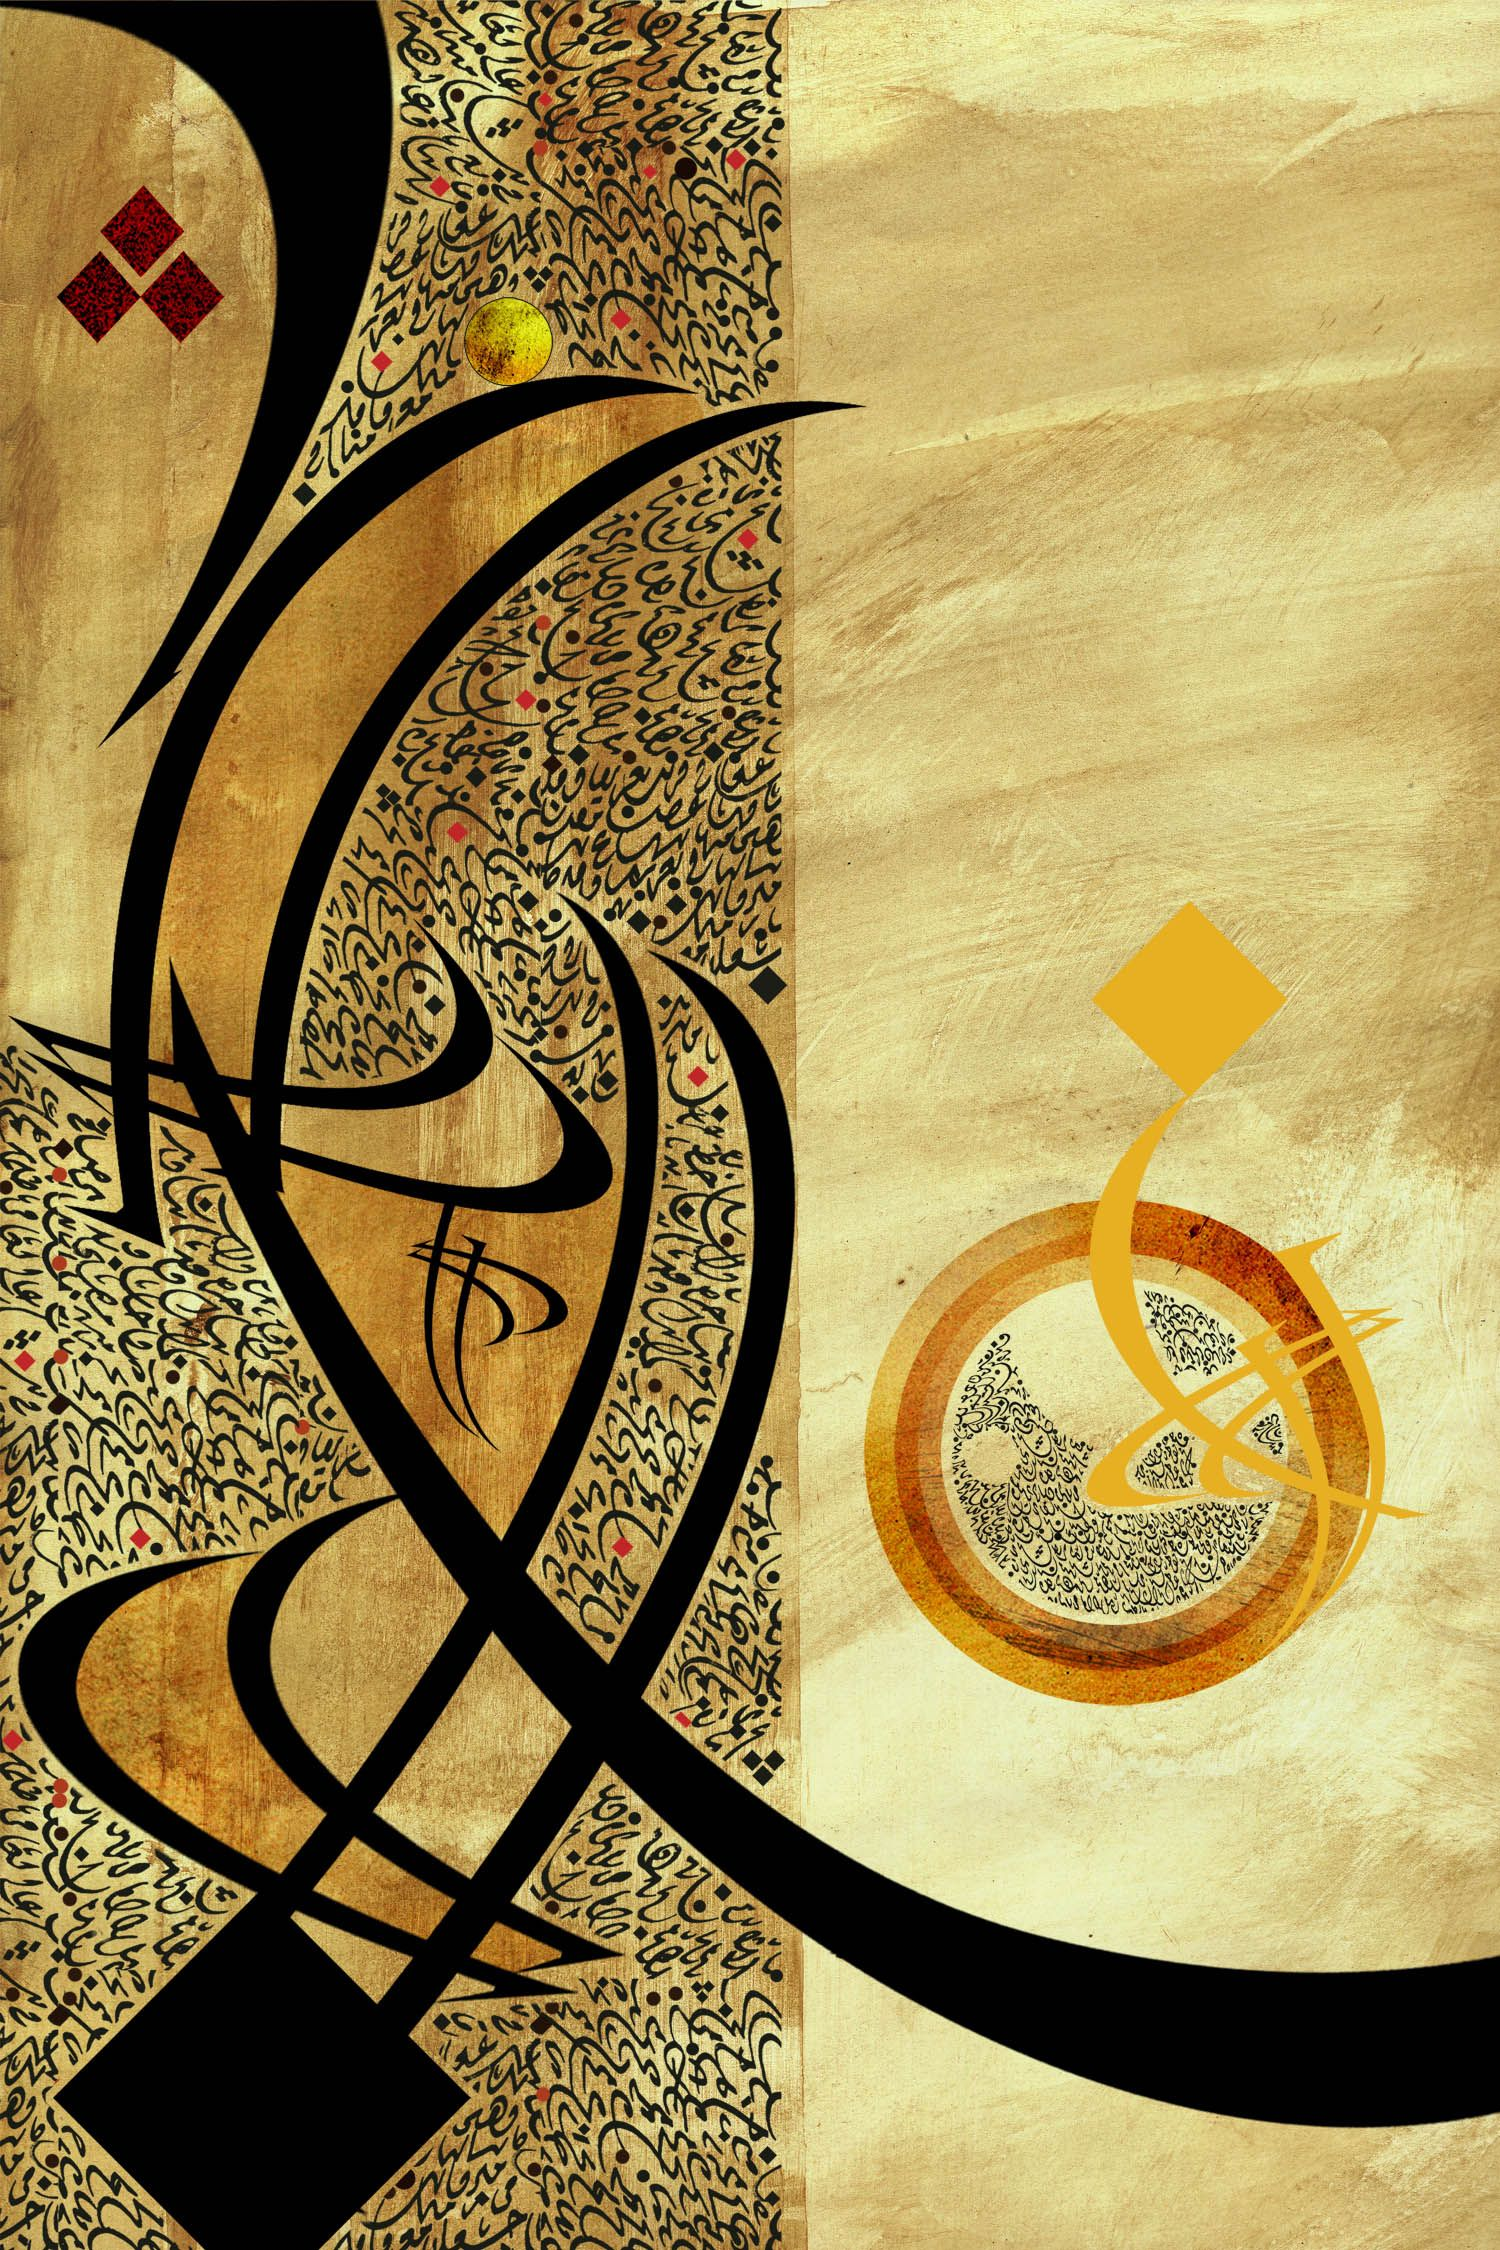 the art of arabic calligraphy read reviews, compare customer ratings, see screenshots, and learn more about calligraphy art download calligraphy art and enjoy.